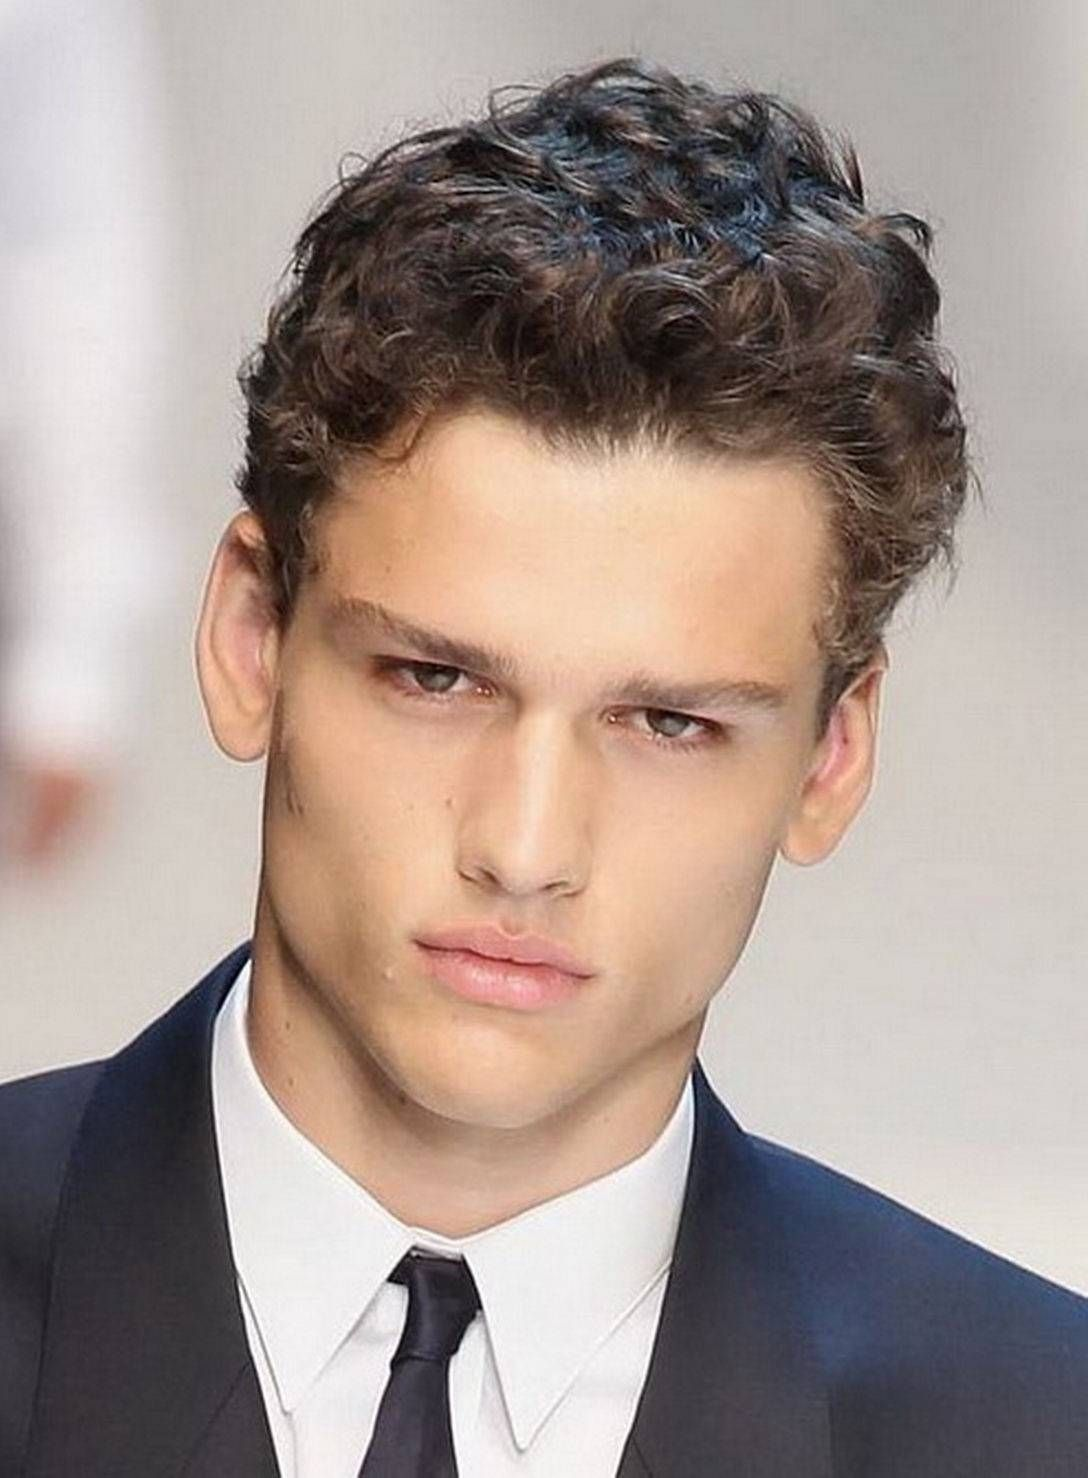 How To Style Thick Curly Hair For Guys Curly Hair Men Men S Curly Hairstyles Boy Hairstyles